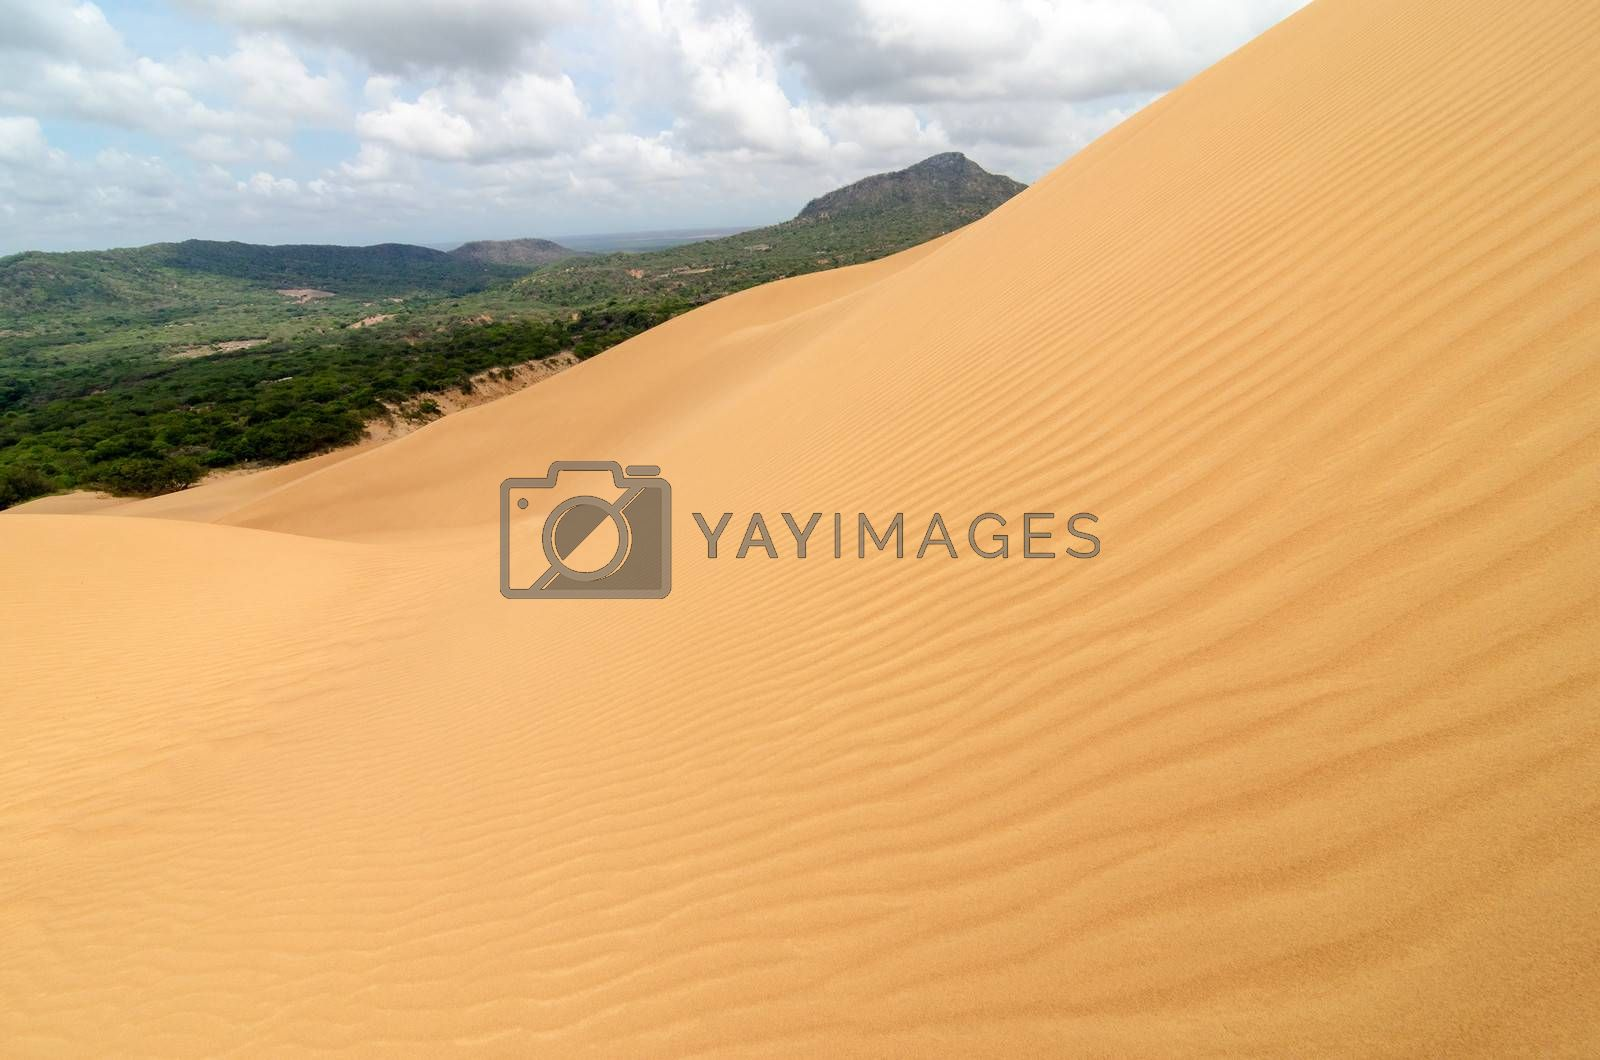 Ripples on a sand dune with a green forest in the background